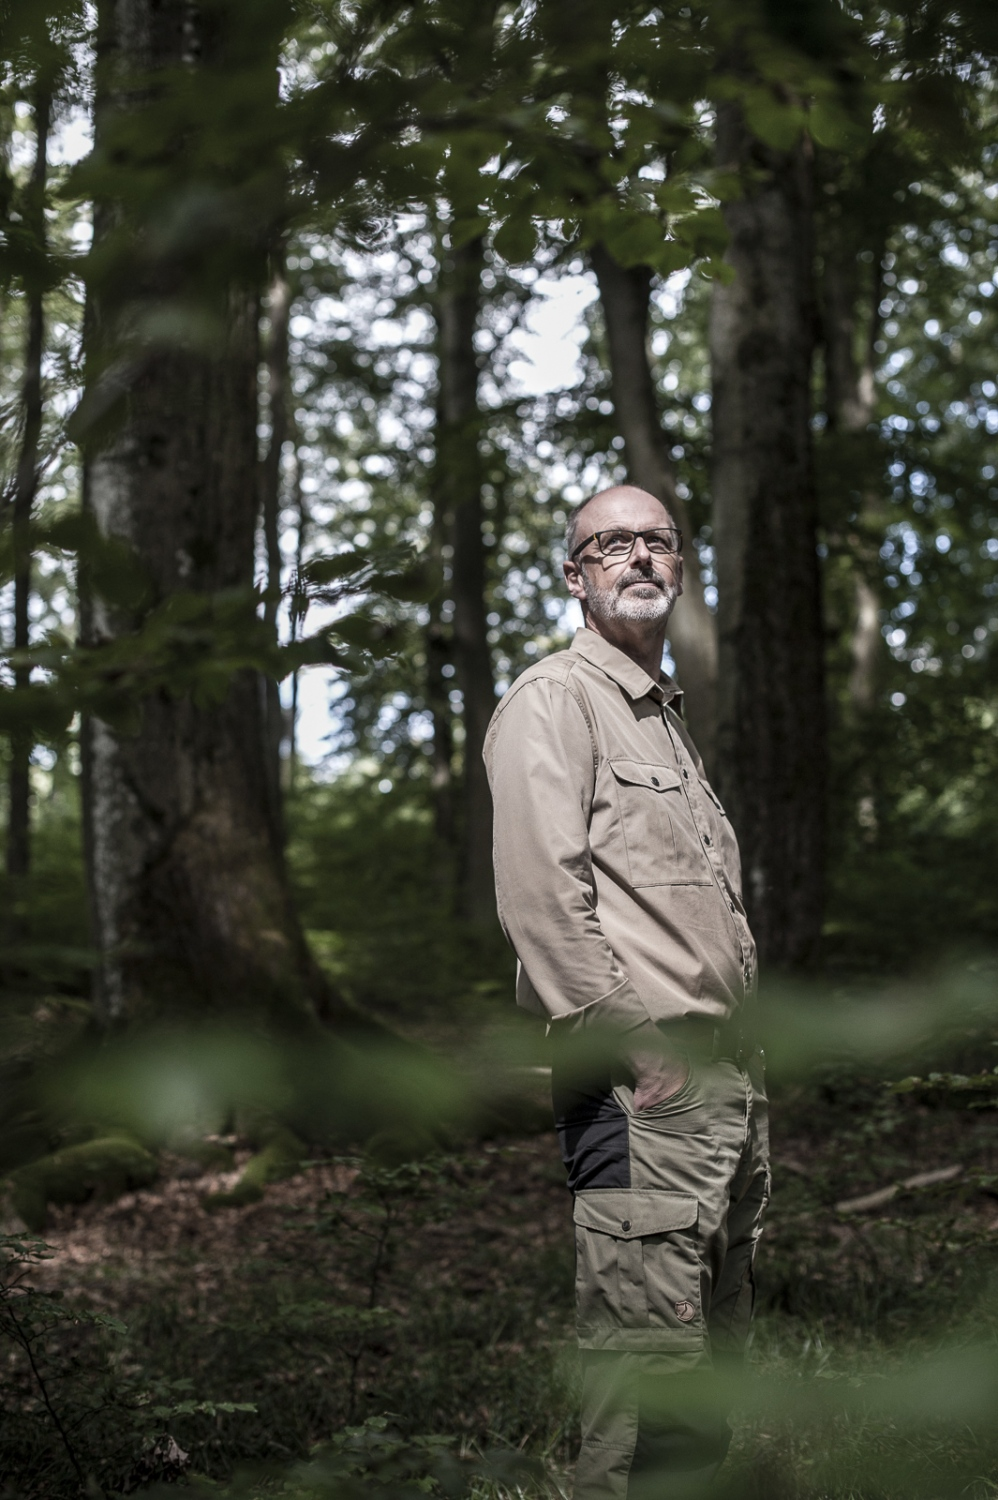 """Peter Wohlleben (born 1964) is a German forester and author who writes on ecological themes in popular language. After graduation from forestry school in Rottenburg am Neckar , he took up a job as a government wood ranger in the Rhineland-Palatinate in 1987. As he grew more familiar with the woodlands he was overseeing, he became disenchanted due to the damage caused by the techniques and technologies he was expected to employ, including the felling of mature trees and the use of insecticides. In his 2015 book about natural forests , Das geheime Leben der Bäume:Was sie fühlen, wie sie kommunizieren - die Entdeckung einer verborgenen Welt , (The Hidden Life of Trees: What they Feel, How they Communicate: Discoveries from a Secret World) he takes the perspective of the trees, much as Jacques Cousteau took the perspective of the inhabitants of the oceans. Among other phenomena, this book introduces for a popular audience the """" Wood-Wide Web """", through which nutrition and signals are exchanged among trees. (wikipedia)"""